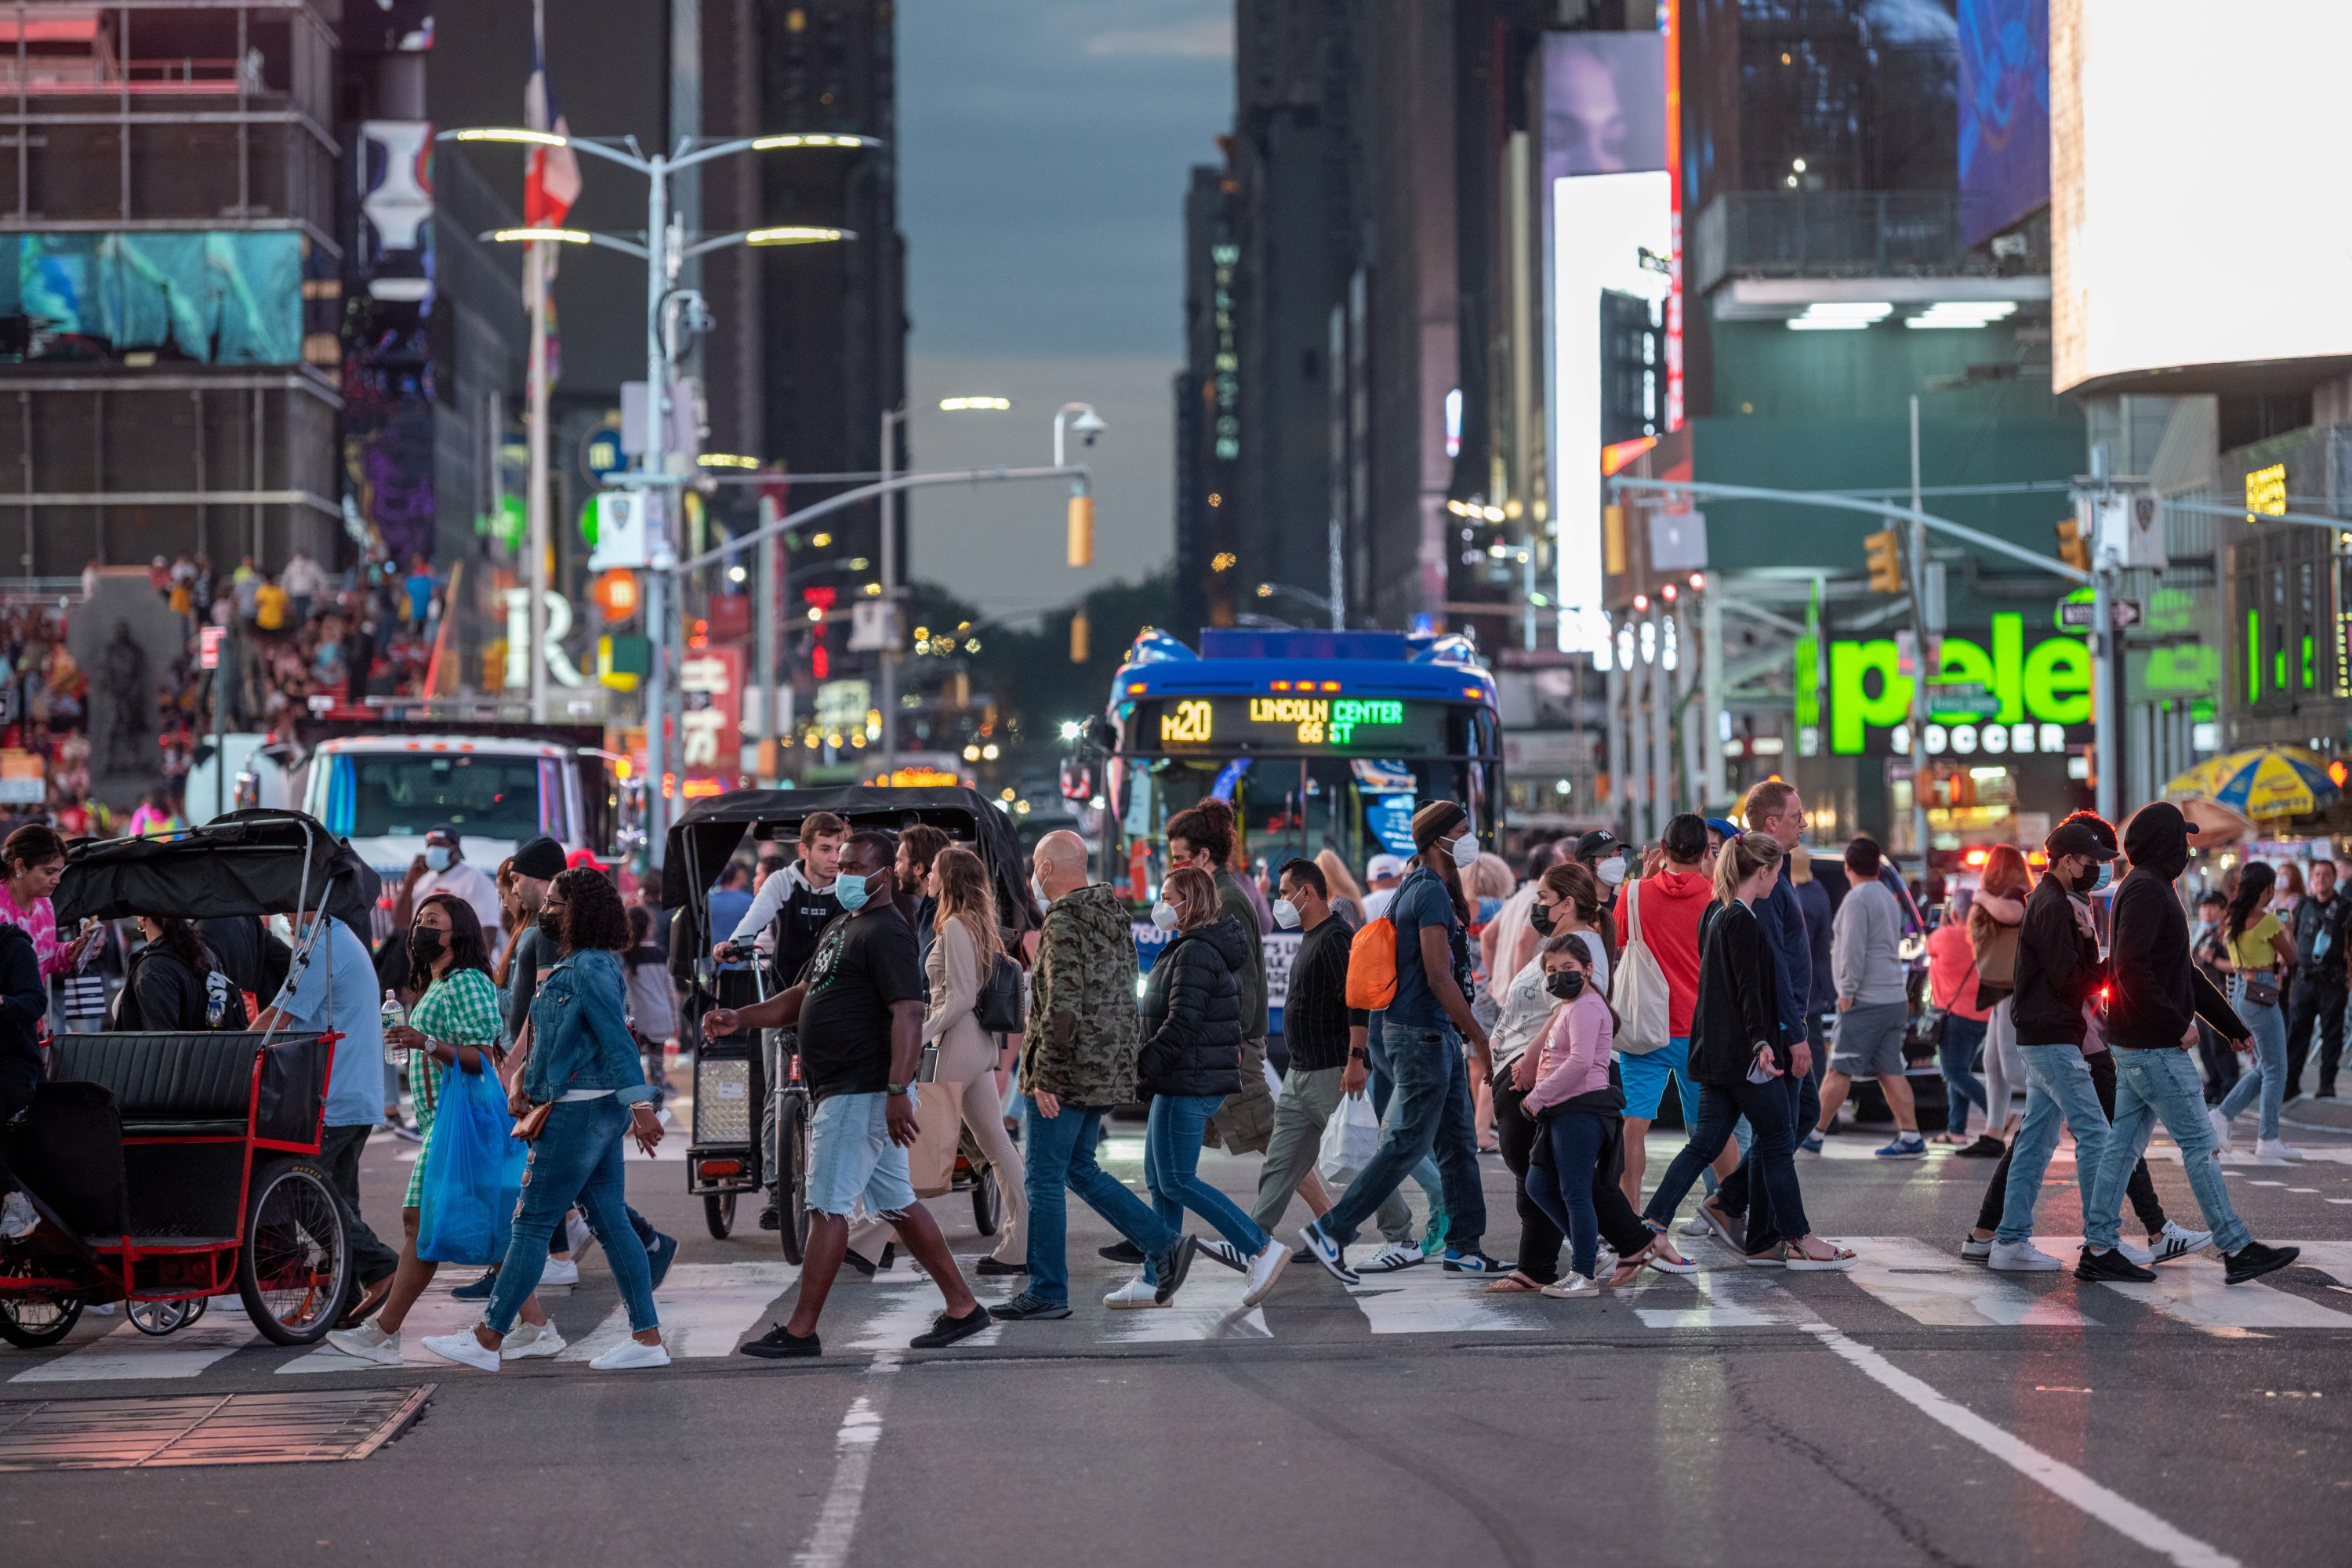 Large crowds of people mostly without masks fill Times Square, in the New York City, U.S., June 12, 2021. (Photo by Getty Images)